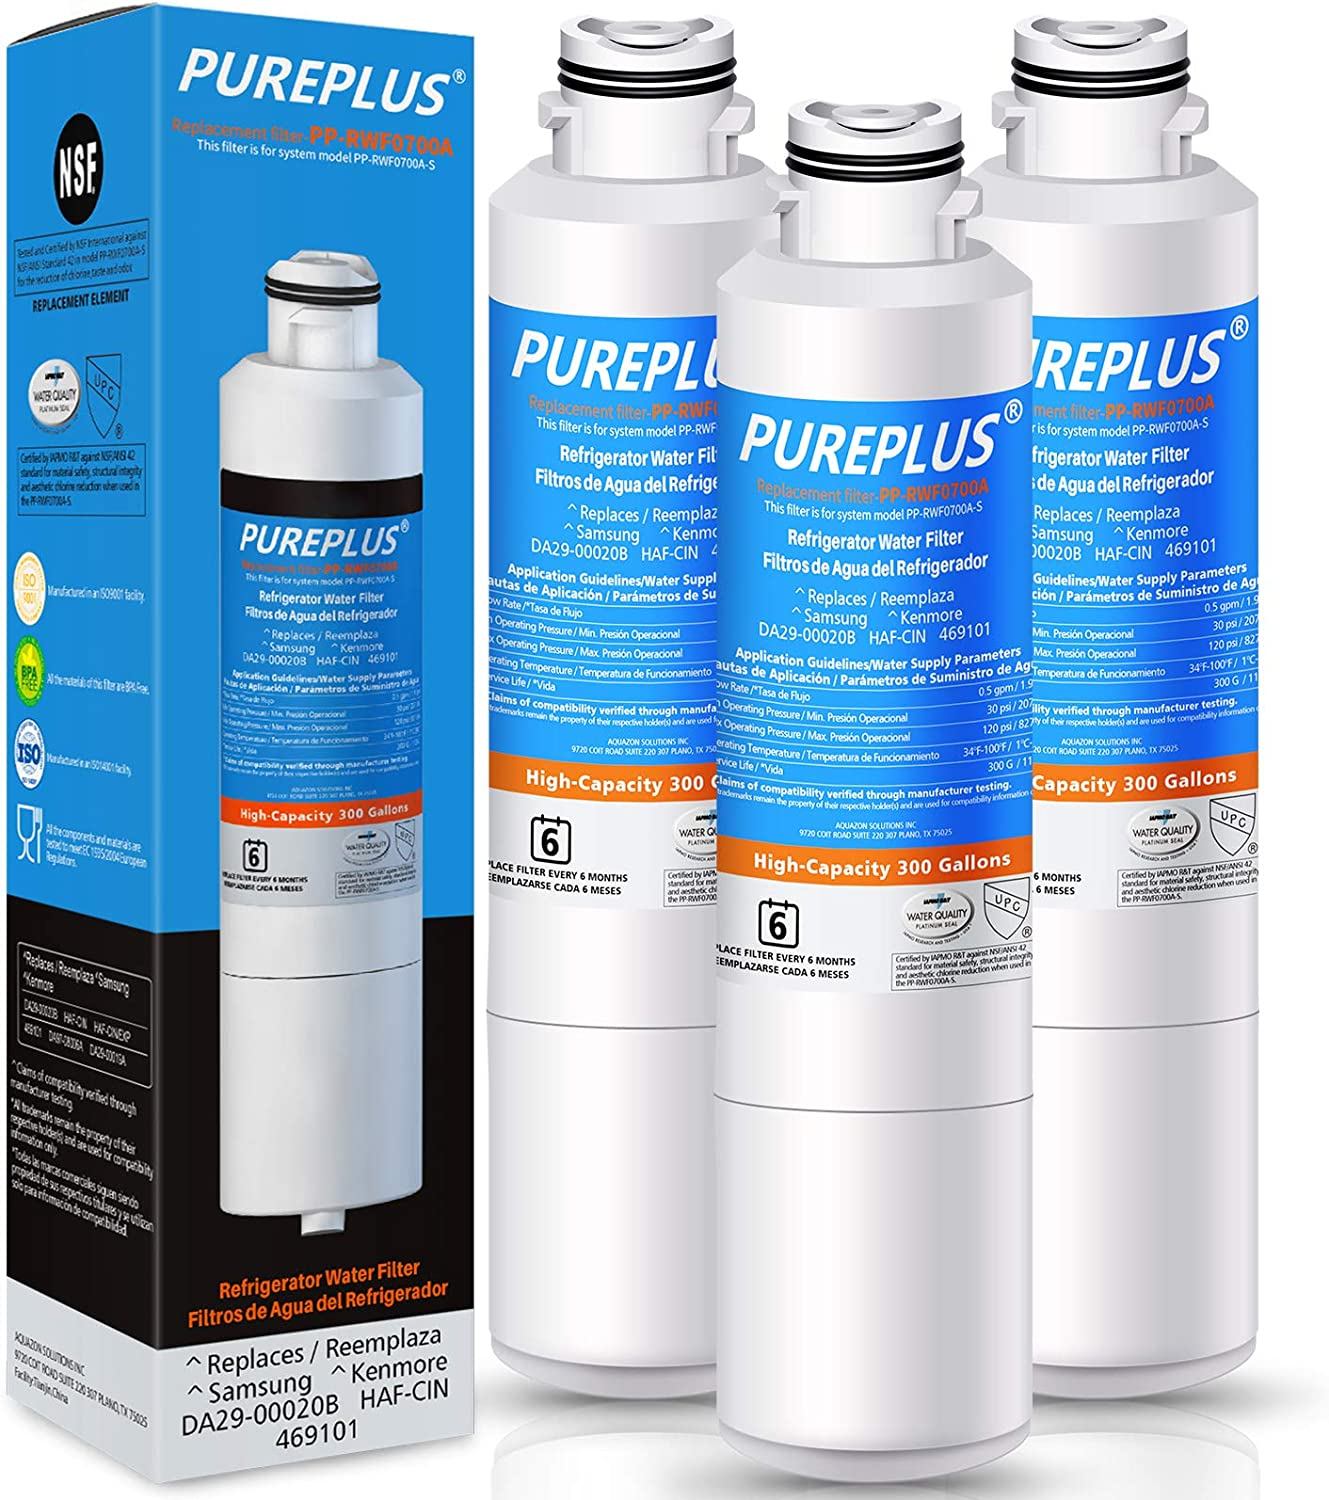 PUREPLUS DA29-00020B Refrigerator In Ranking TOP12 a popularity Water Replacement S for Filter